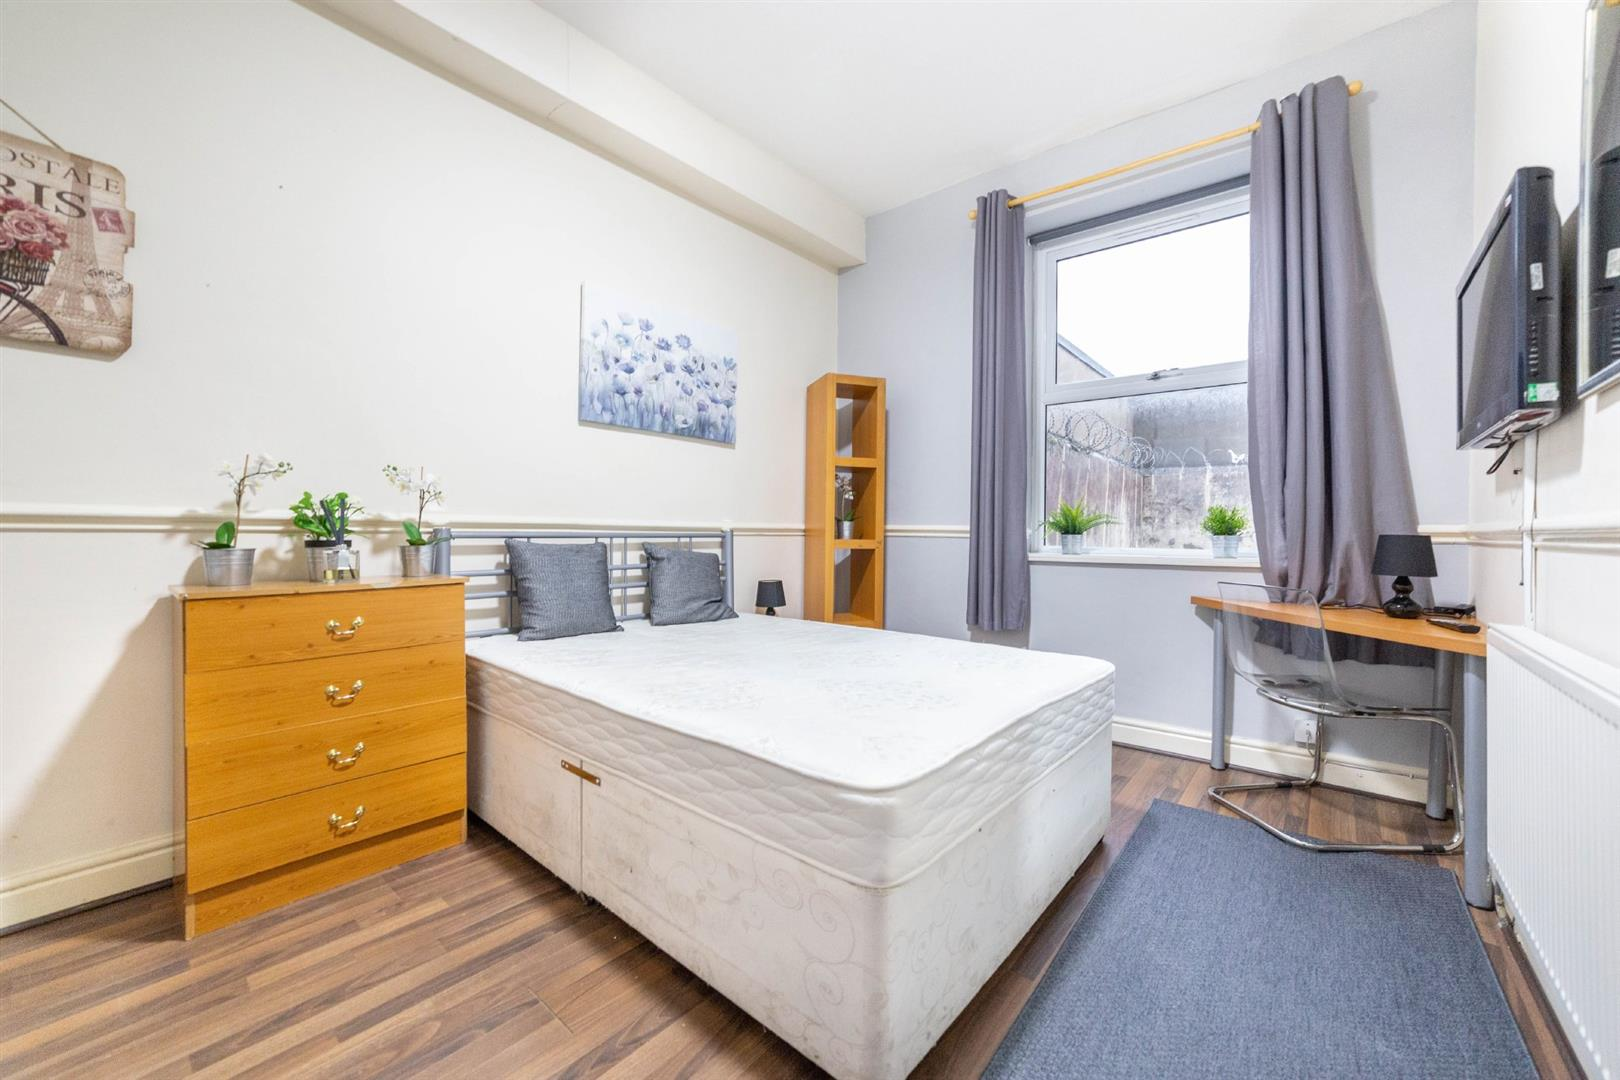 1 bed apartment to rent in Newcastle Upon Tyne, NE4 6AQ - Property Image 1